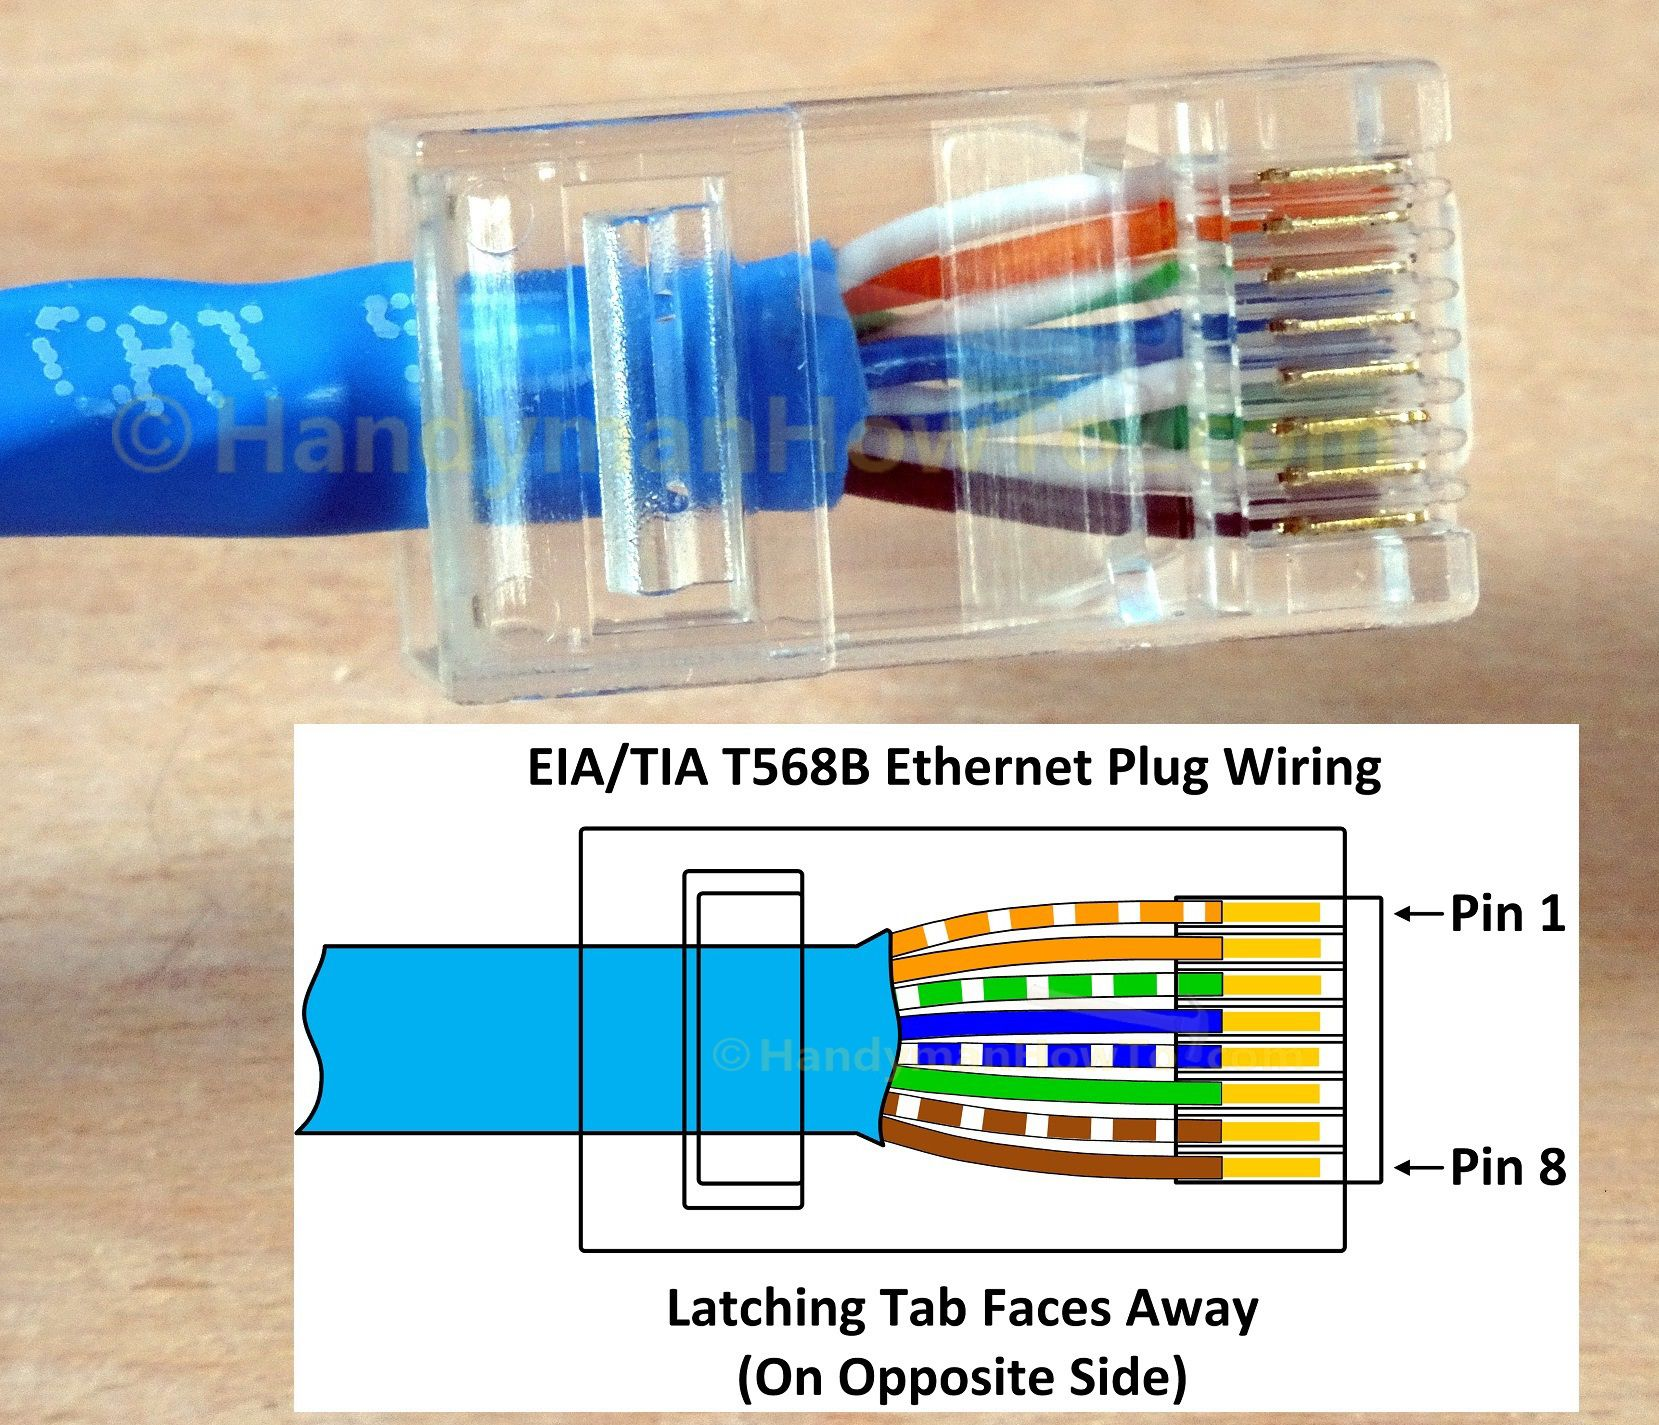 rj45 ethernet plug wiring per eai tia t568b diy w 2019. Black Bedroom Furniture Sets. Home Design Ideas